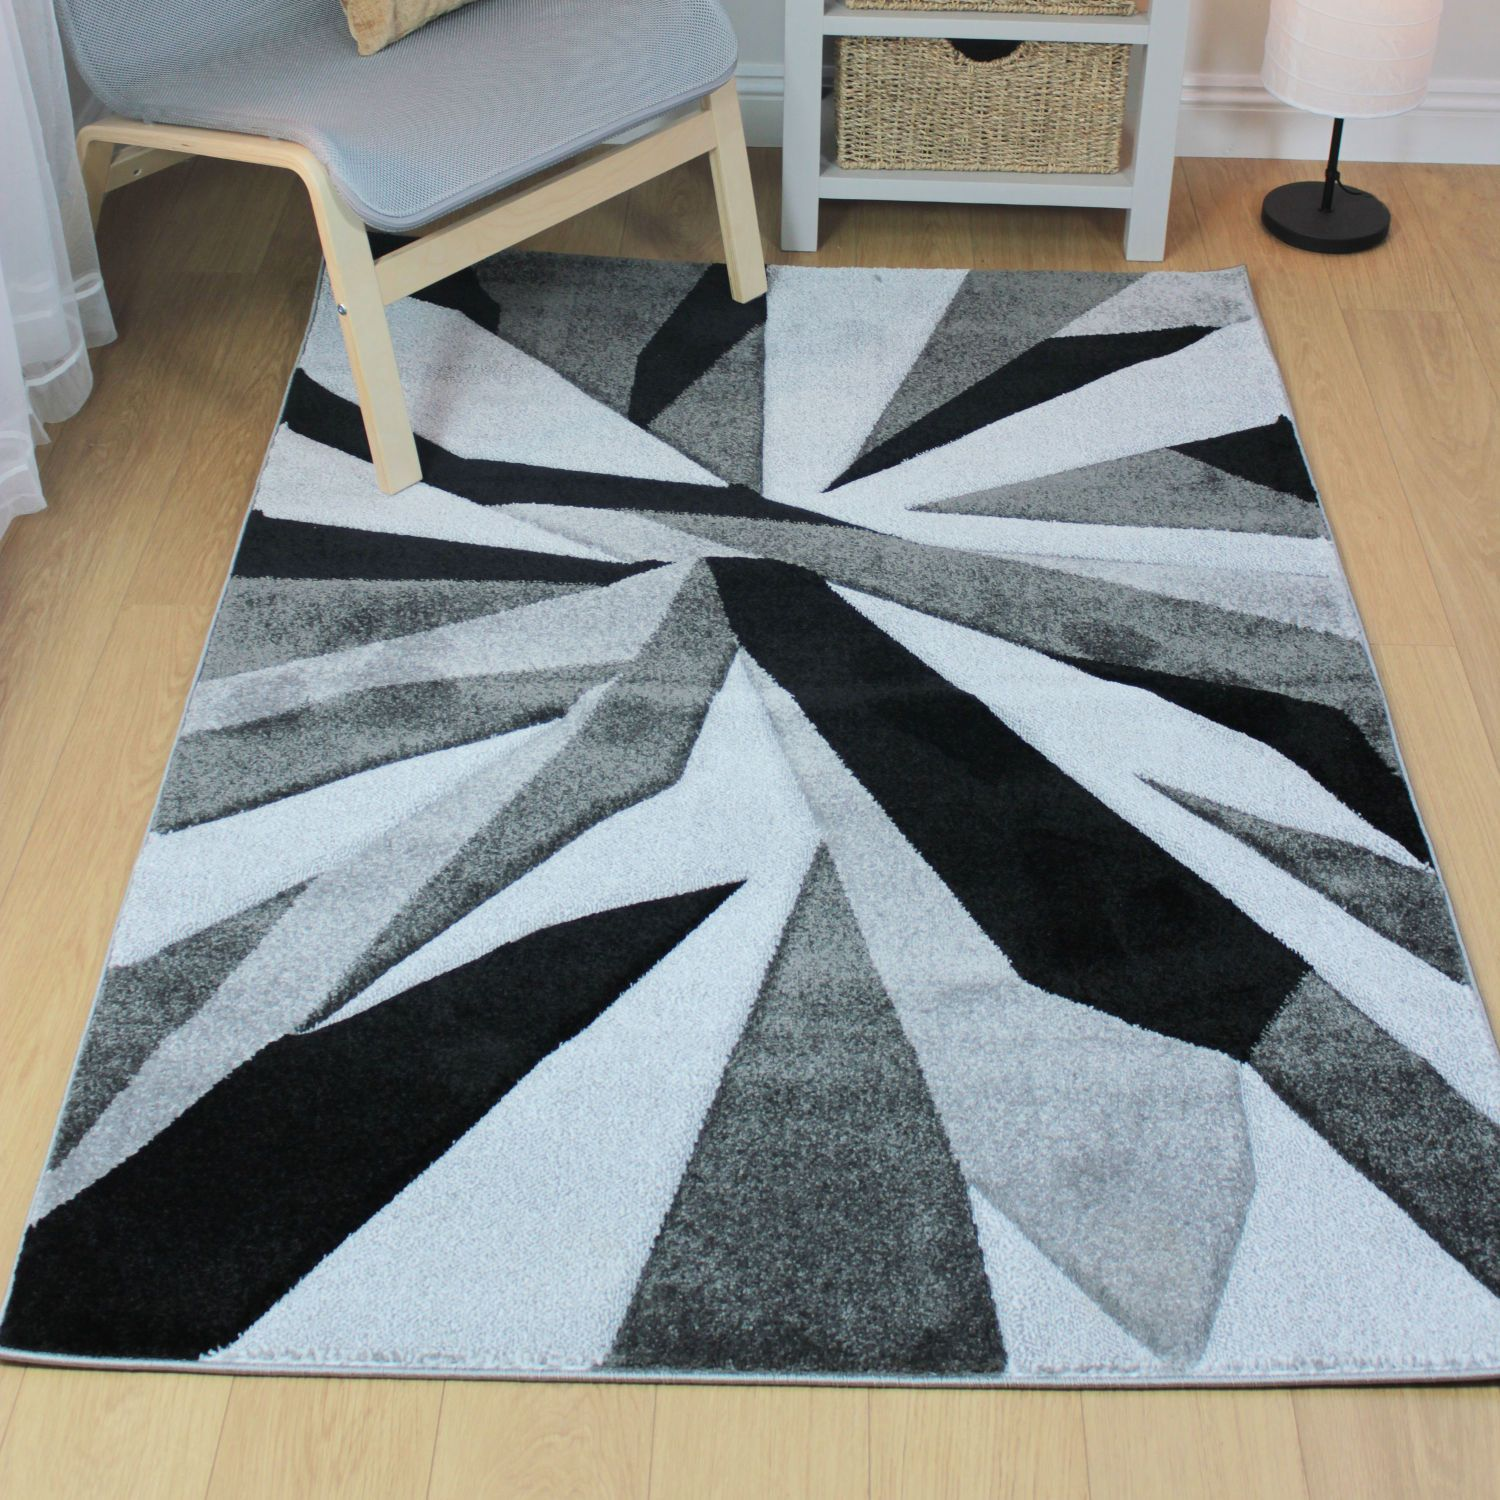 Fusion Light Beige 120cm X 160cm Colourfast So The Rug Will Not Fade Carpet Tiles Opening Hours Easy Wipe Clean Details Of This Range